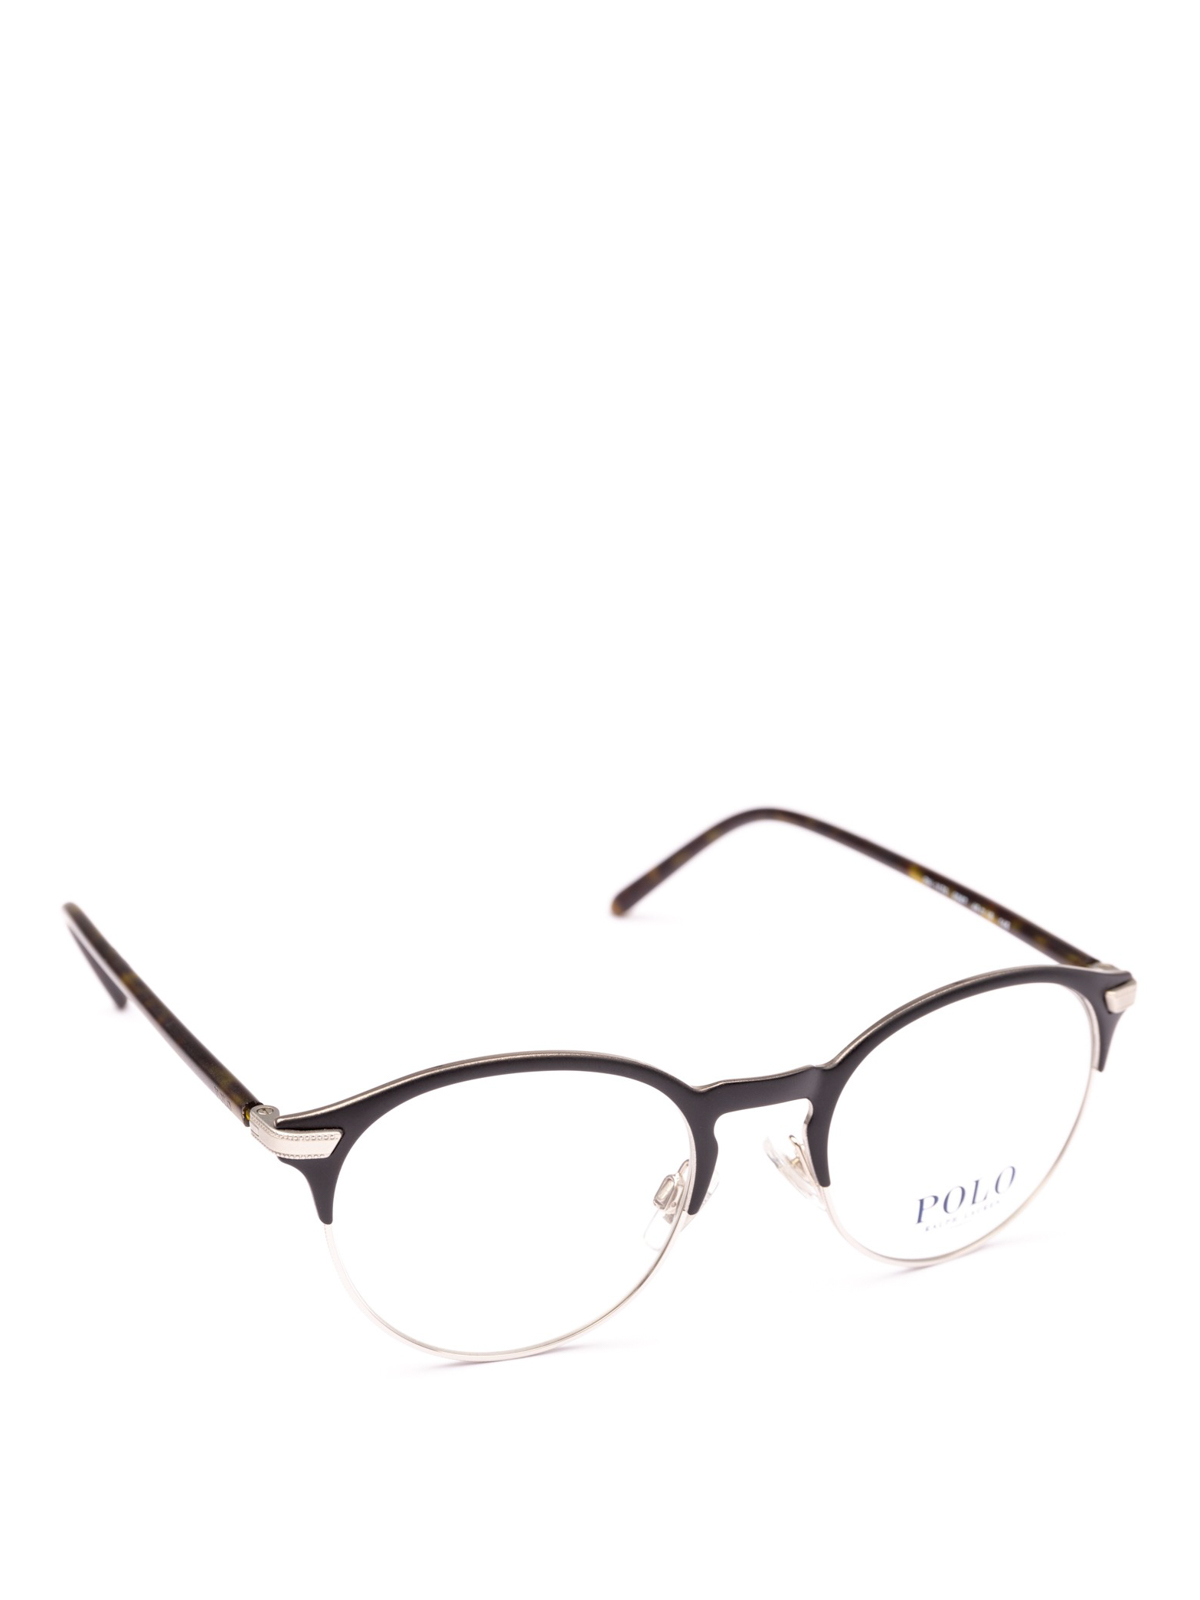 Acetate Glasses Ralph Metal Polo Black And Framed Lauren Half VUzGMpLqS